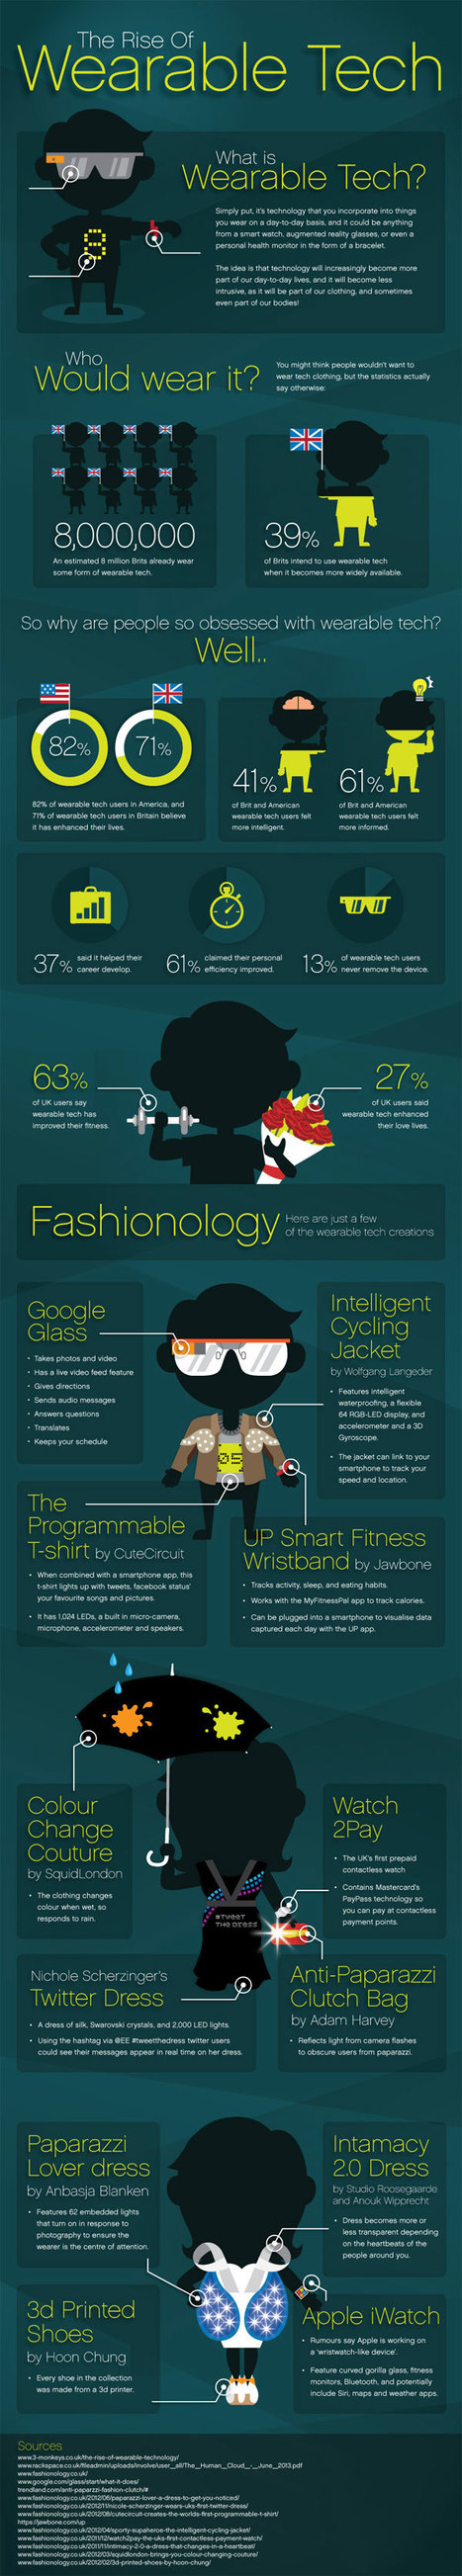 Infographic: The Rise of Wearable Technology | Comunicación y Salud | Scoop.it